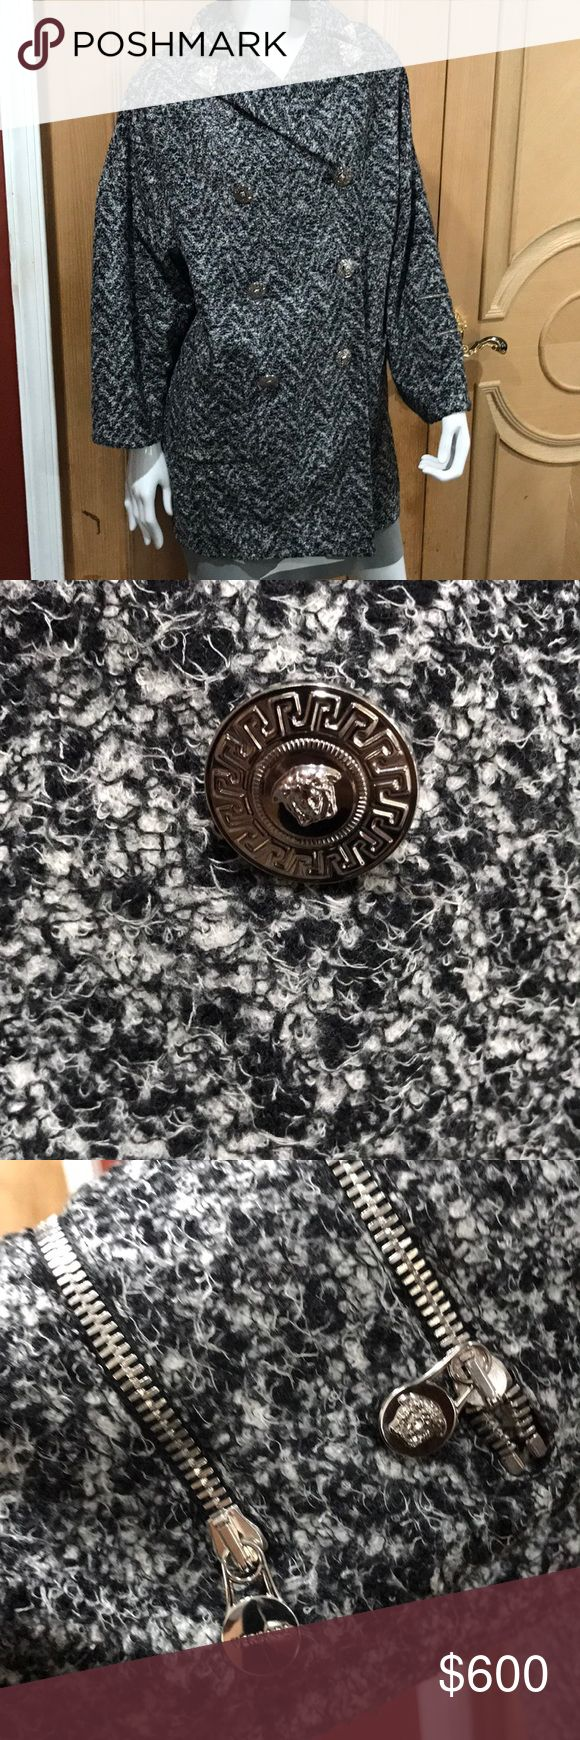 Versace Coat Versace black and white tweed coat with silver iconic buttons zipper and charms on arm wide arms front pockets jeweled crystal collar extremely beautiful the perfect car coat size 38 Versace Jackets & Coats